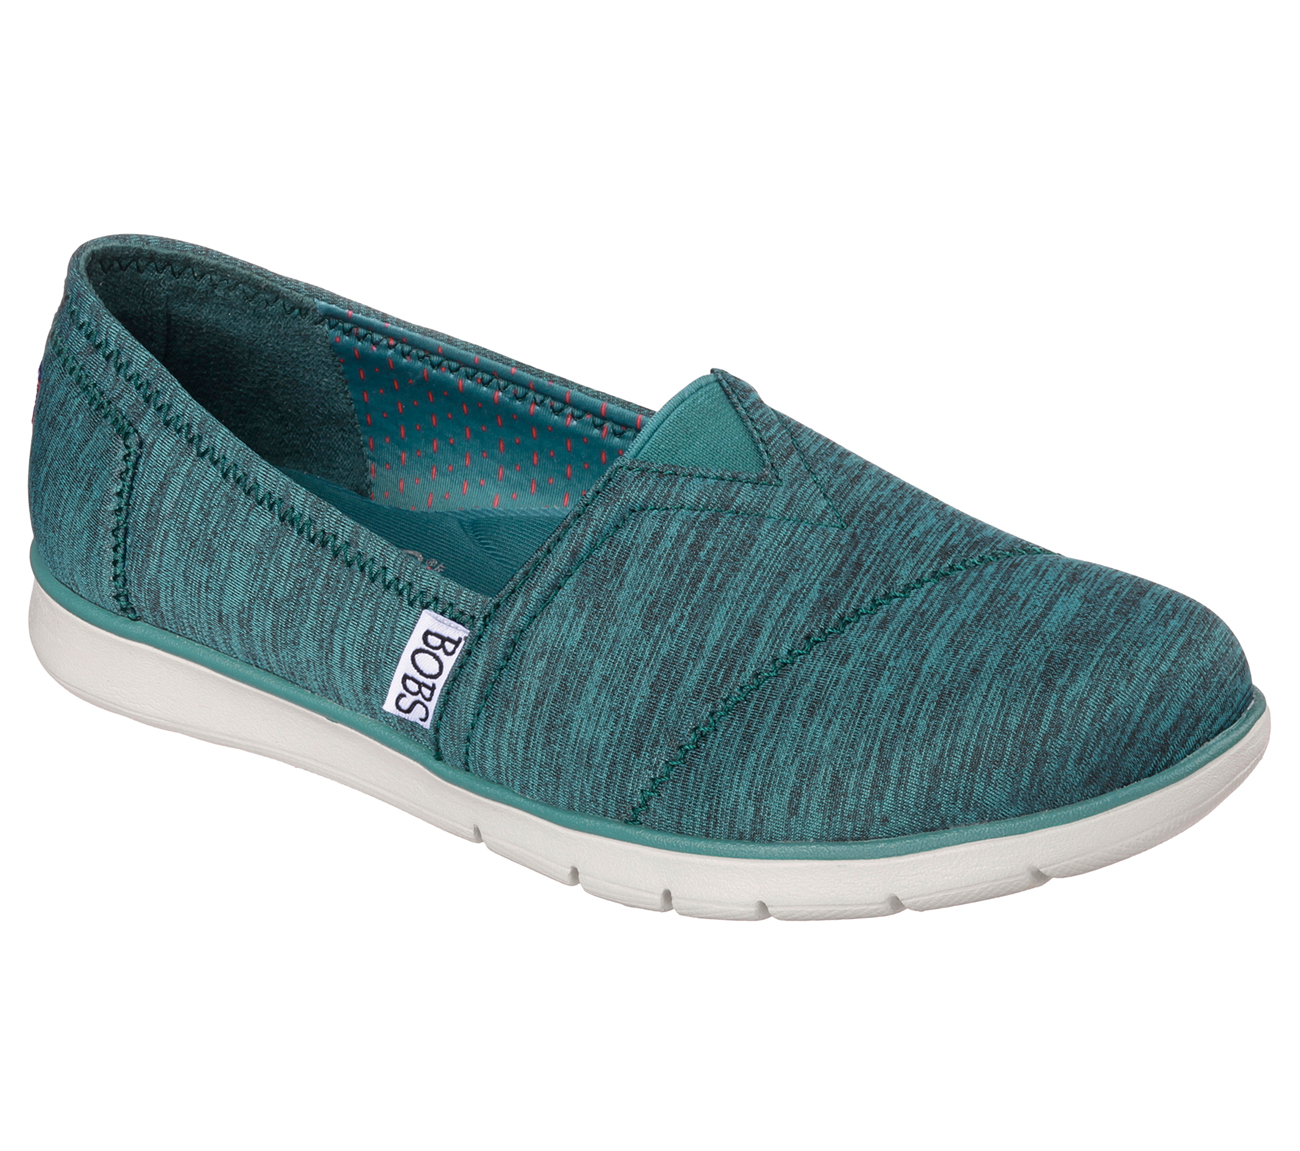 Bobs Shoes Skechers Canada